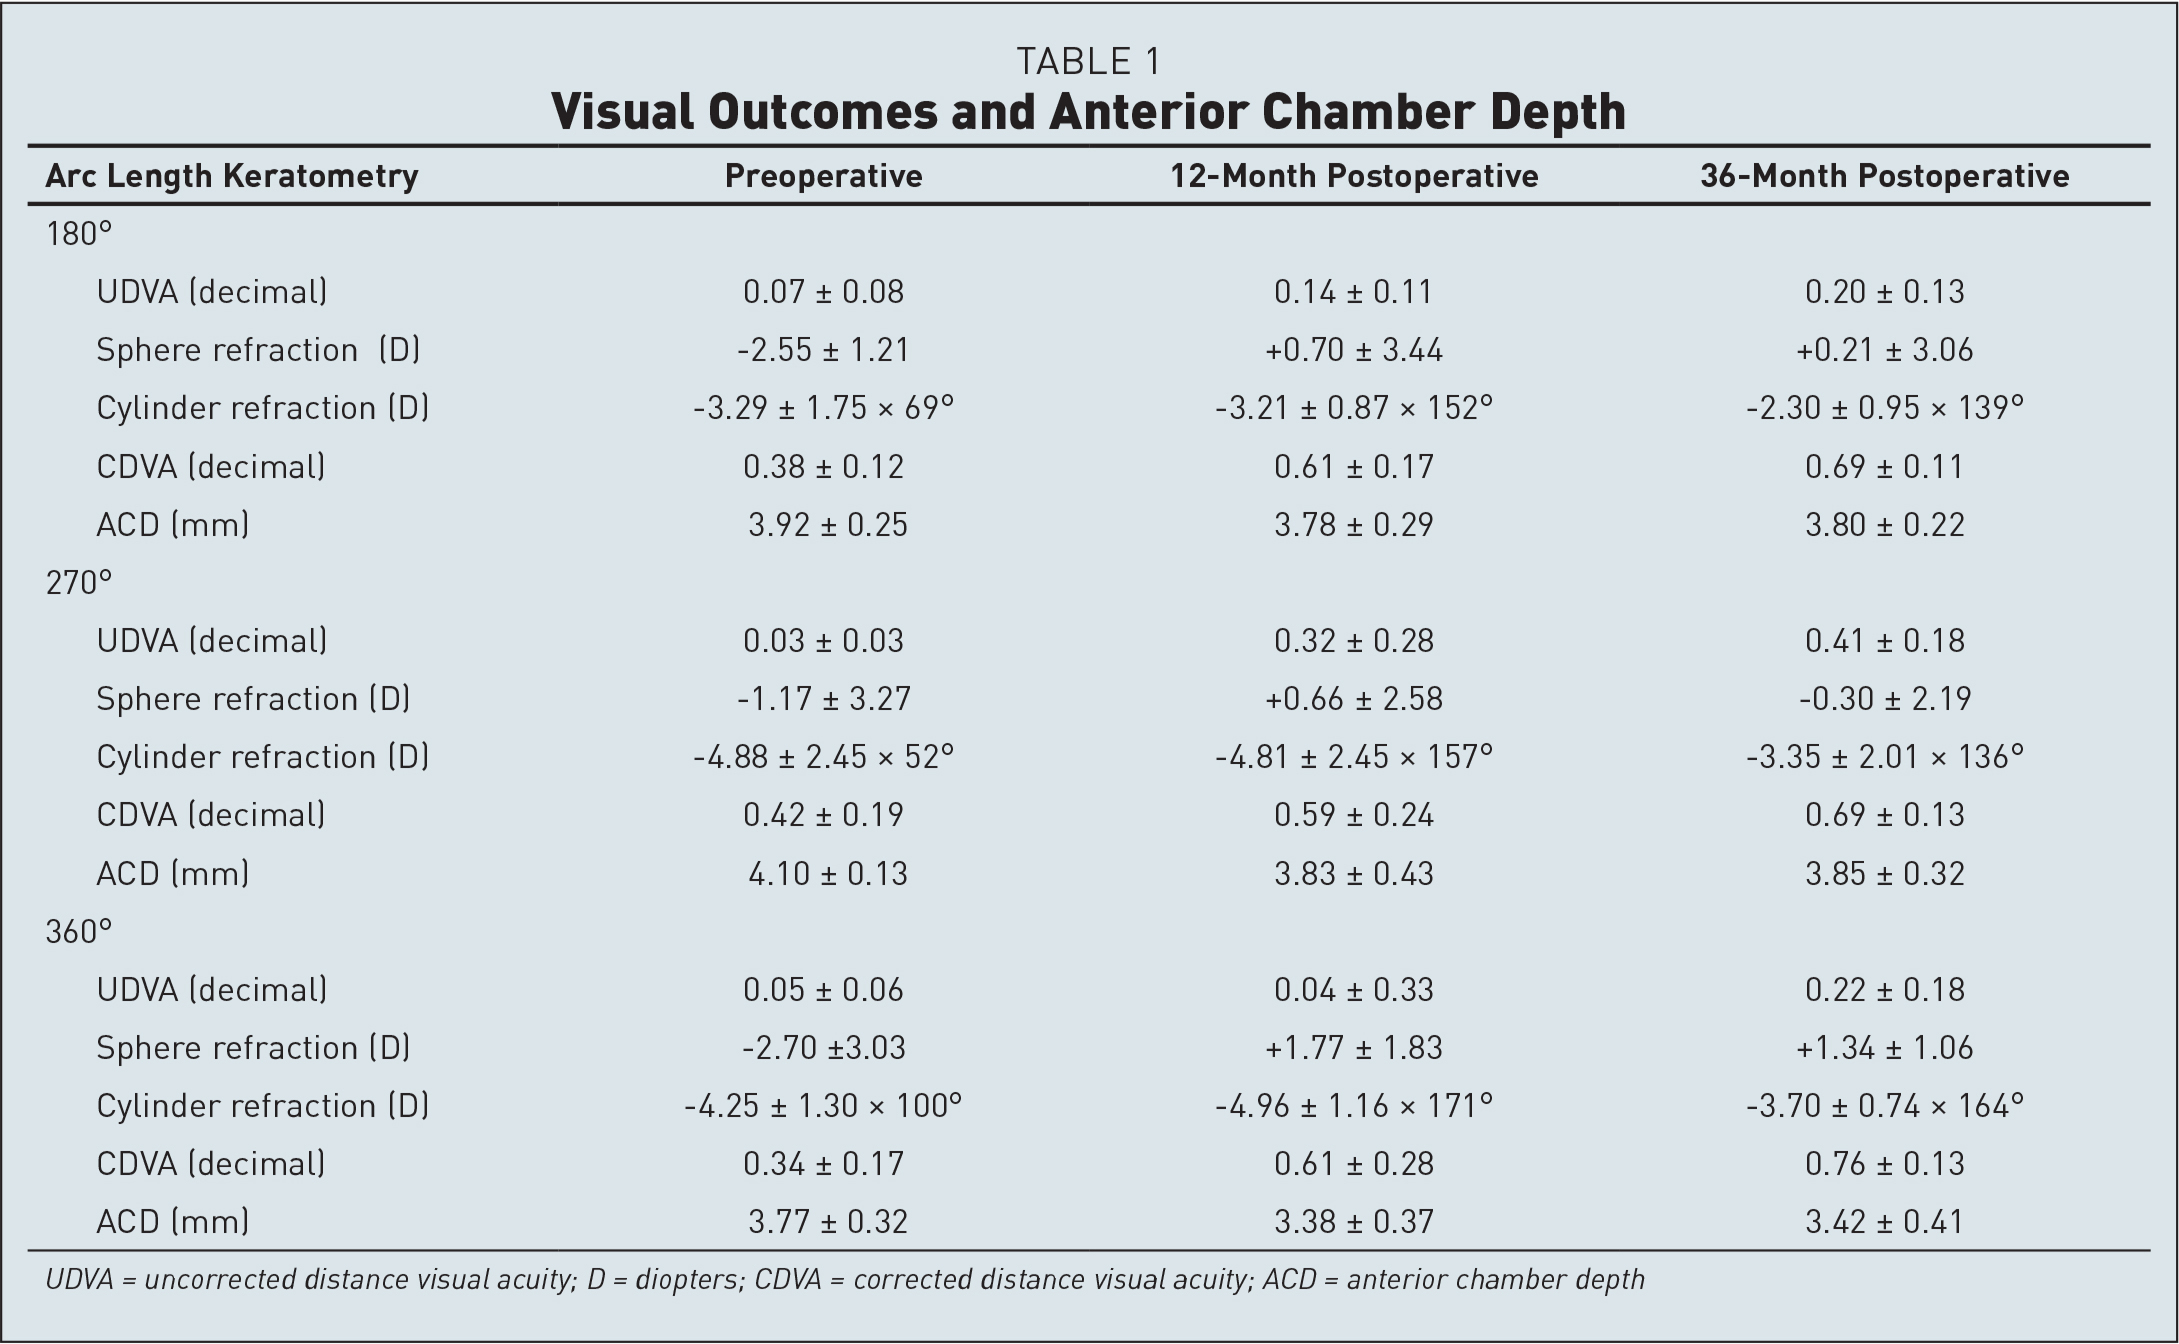 Visual Outcomes and Anterior Chamber Depth